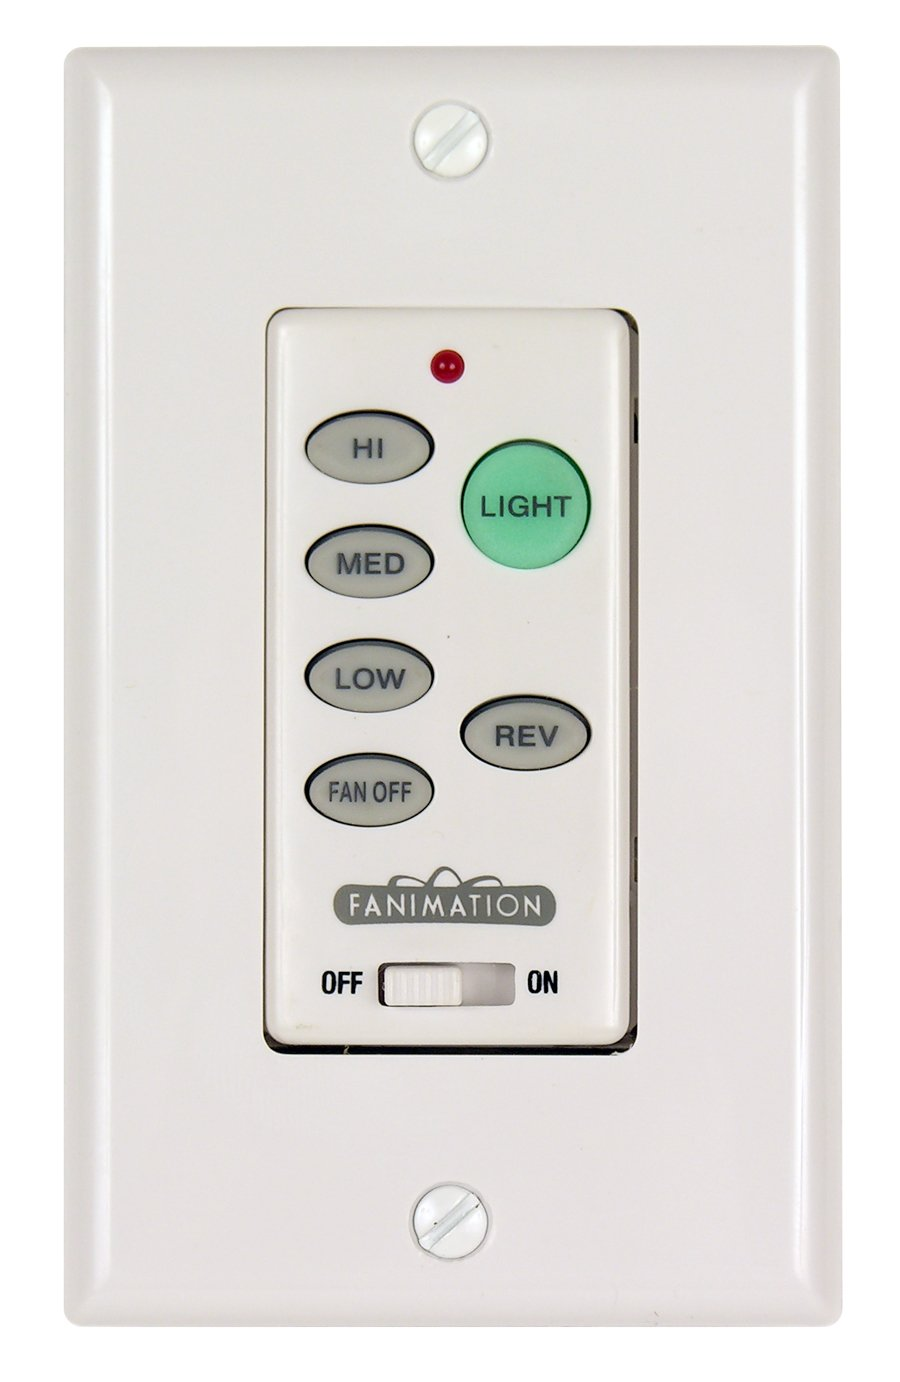 Fanimation C21 Wall Control Fan and Light 3-Speed/Reversing, White, See Image